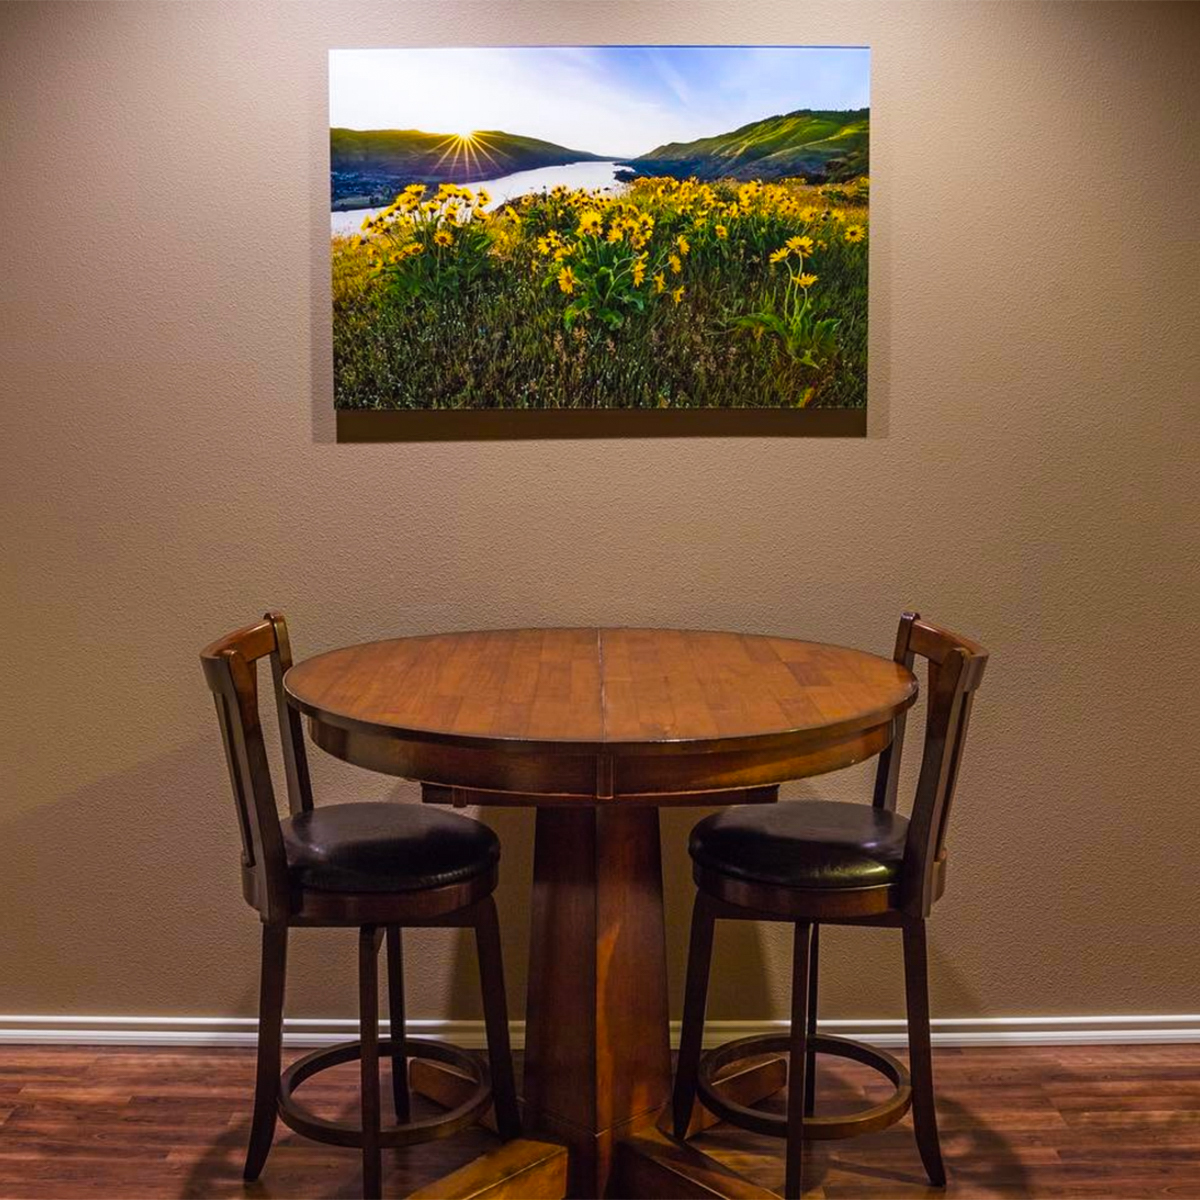 Acrylic Face Mount Print in Dining Room - Face Mounting Photos on Acyrlic